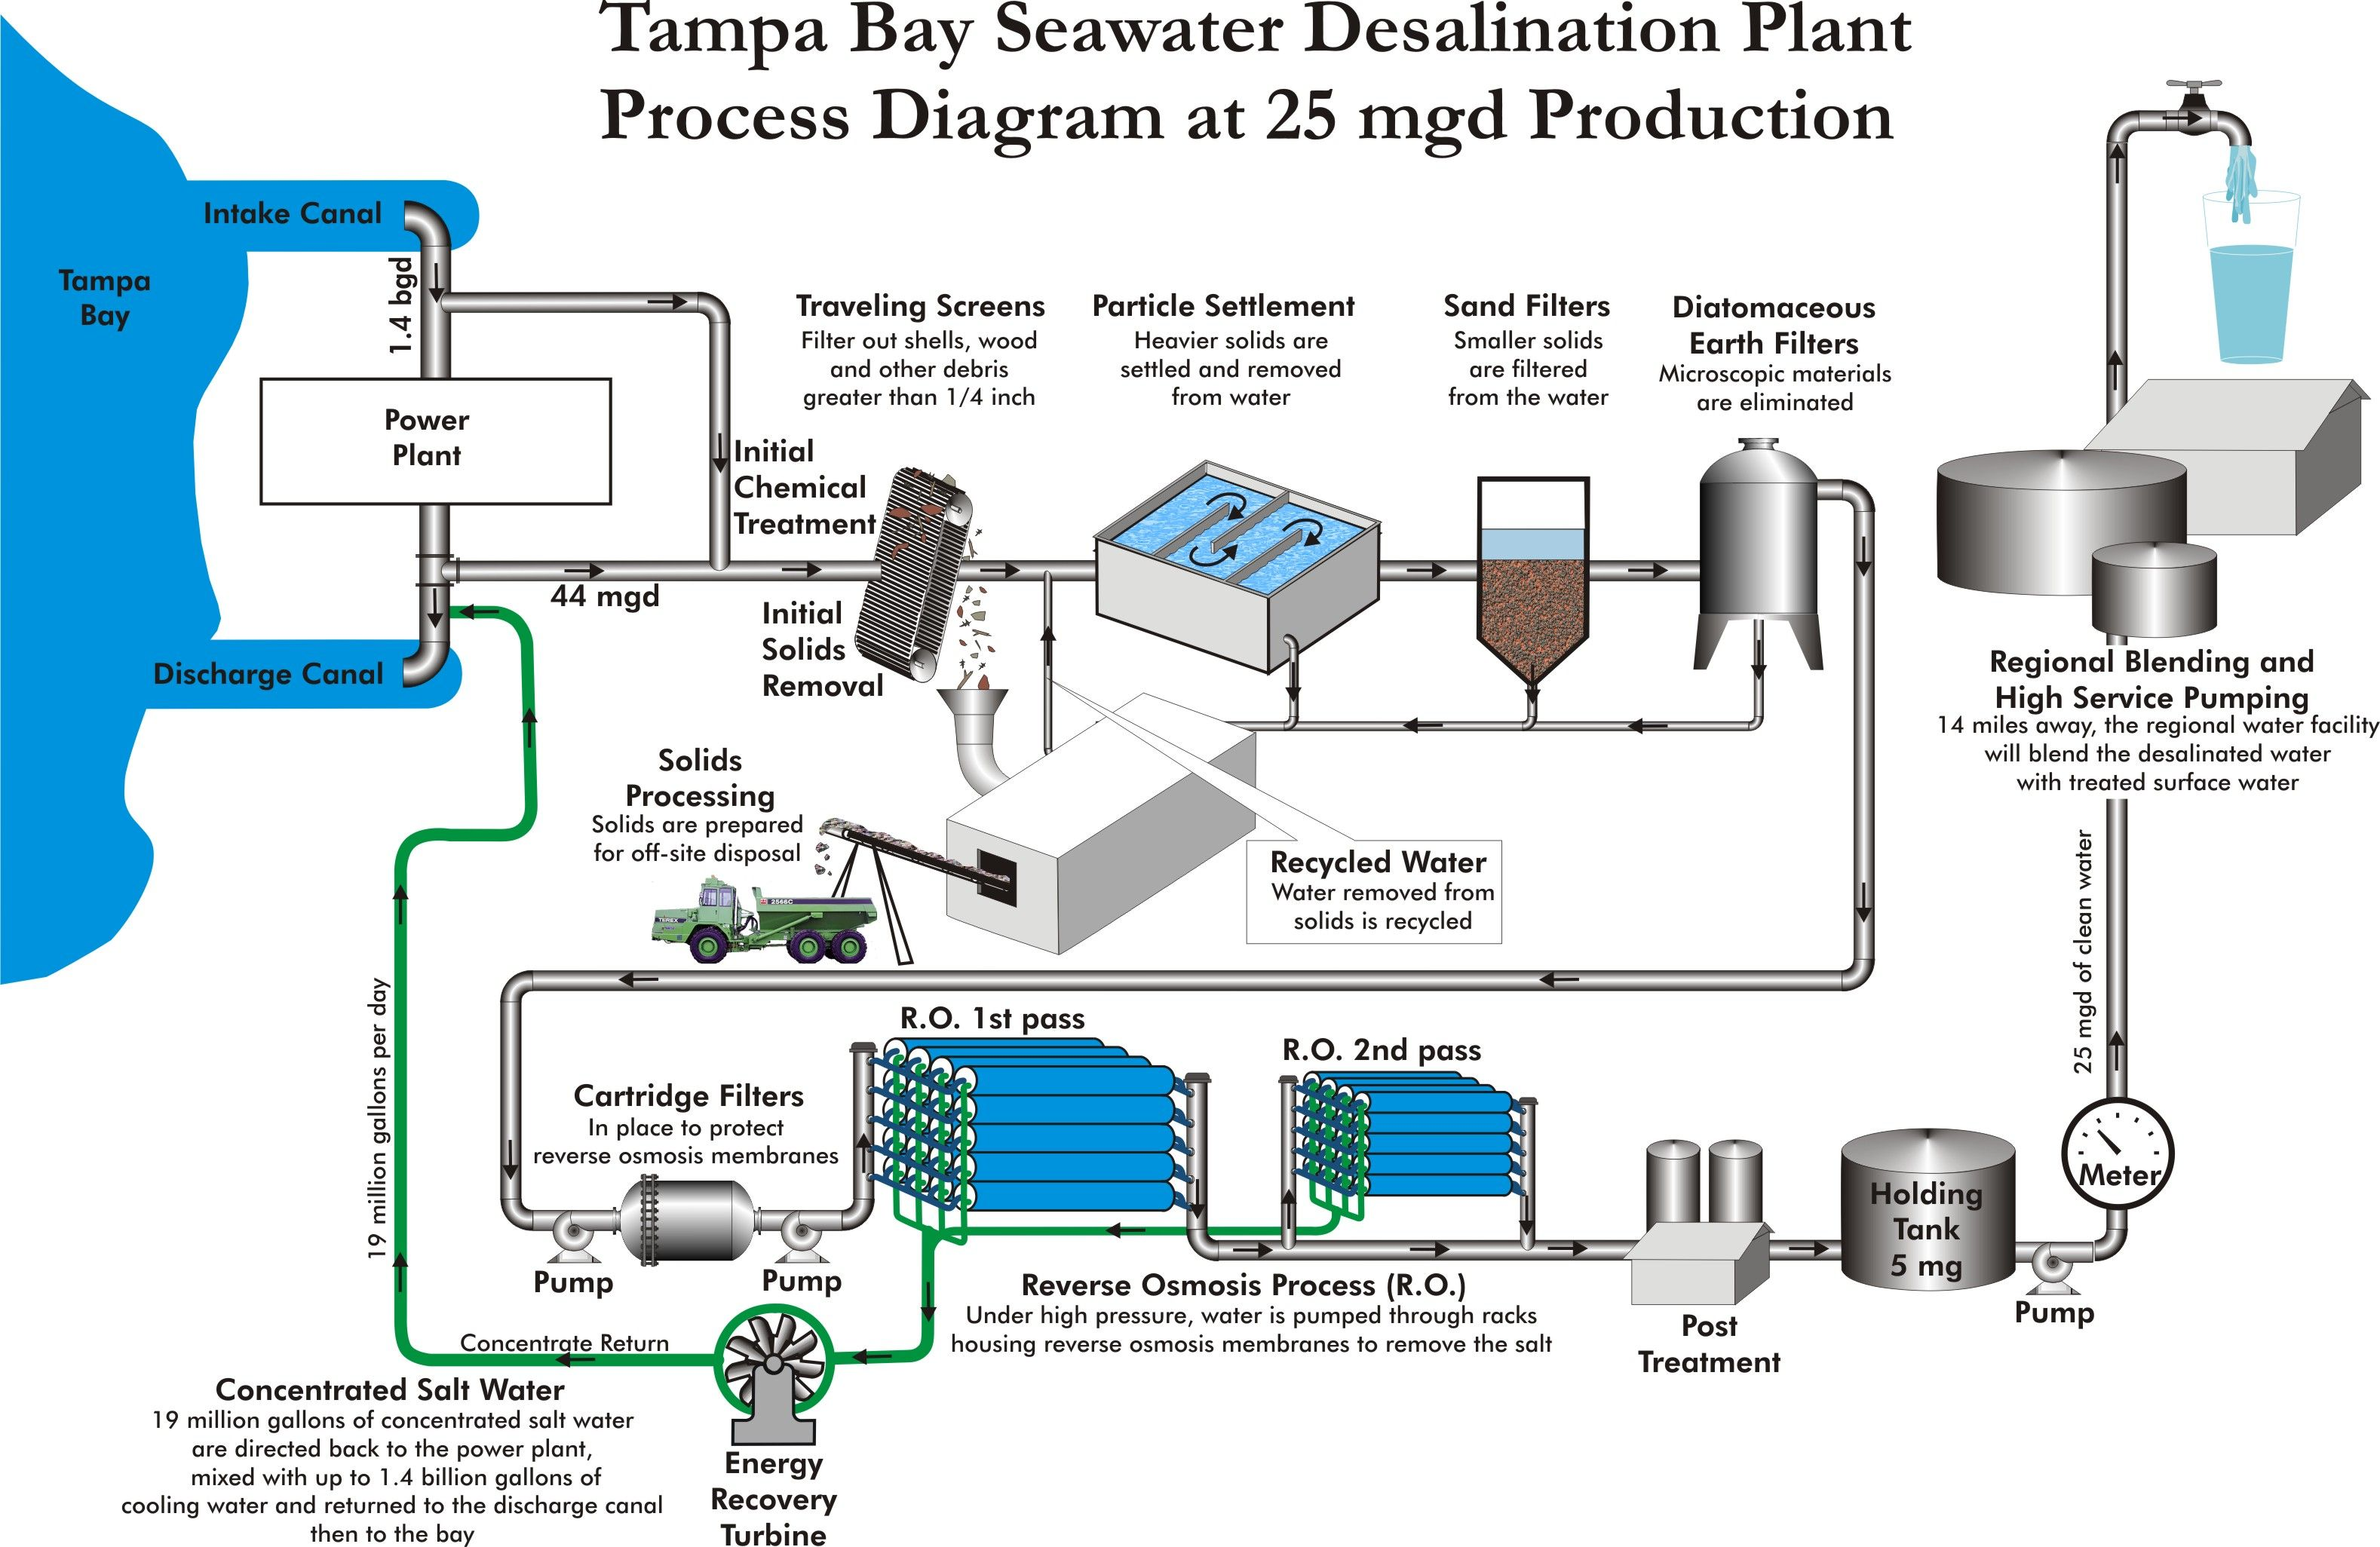 wastewater treatment plant flow diagram 5 circle venn template powerpoint tampa bay seawater desalination